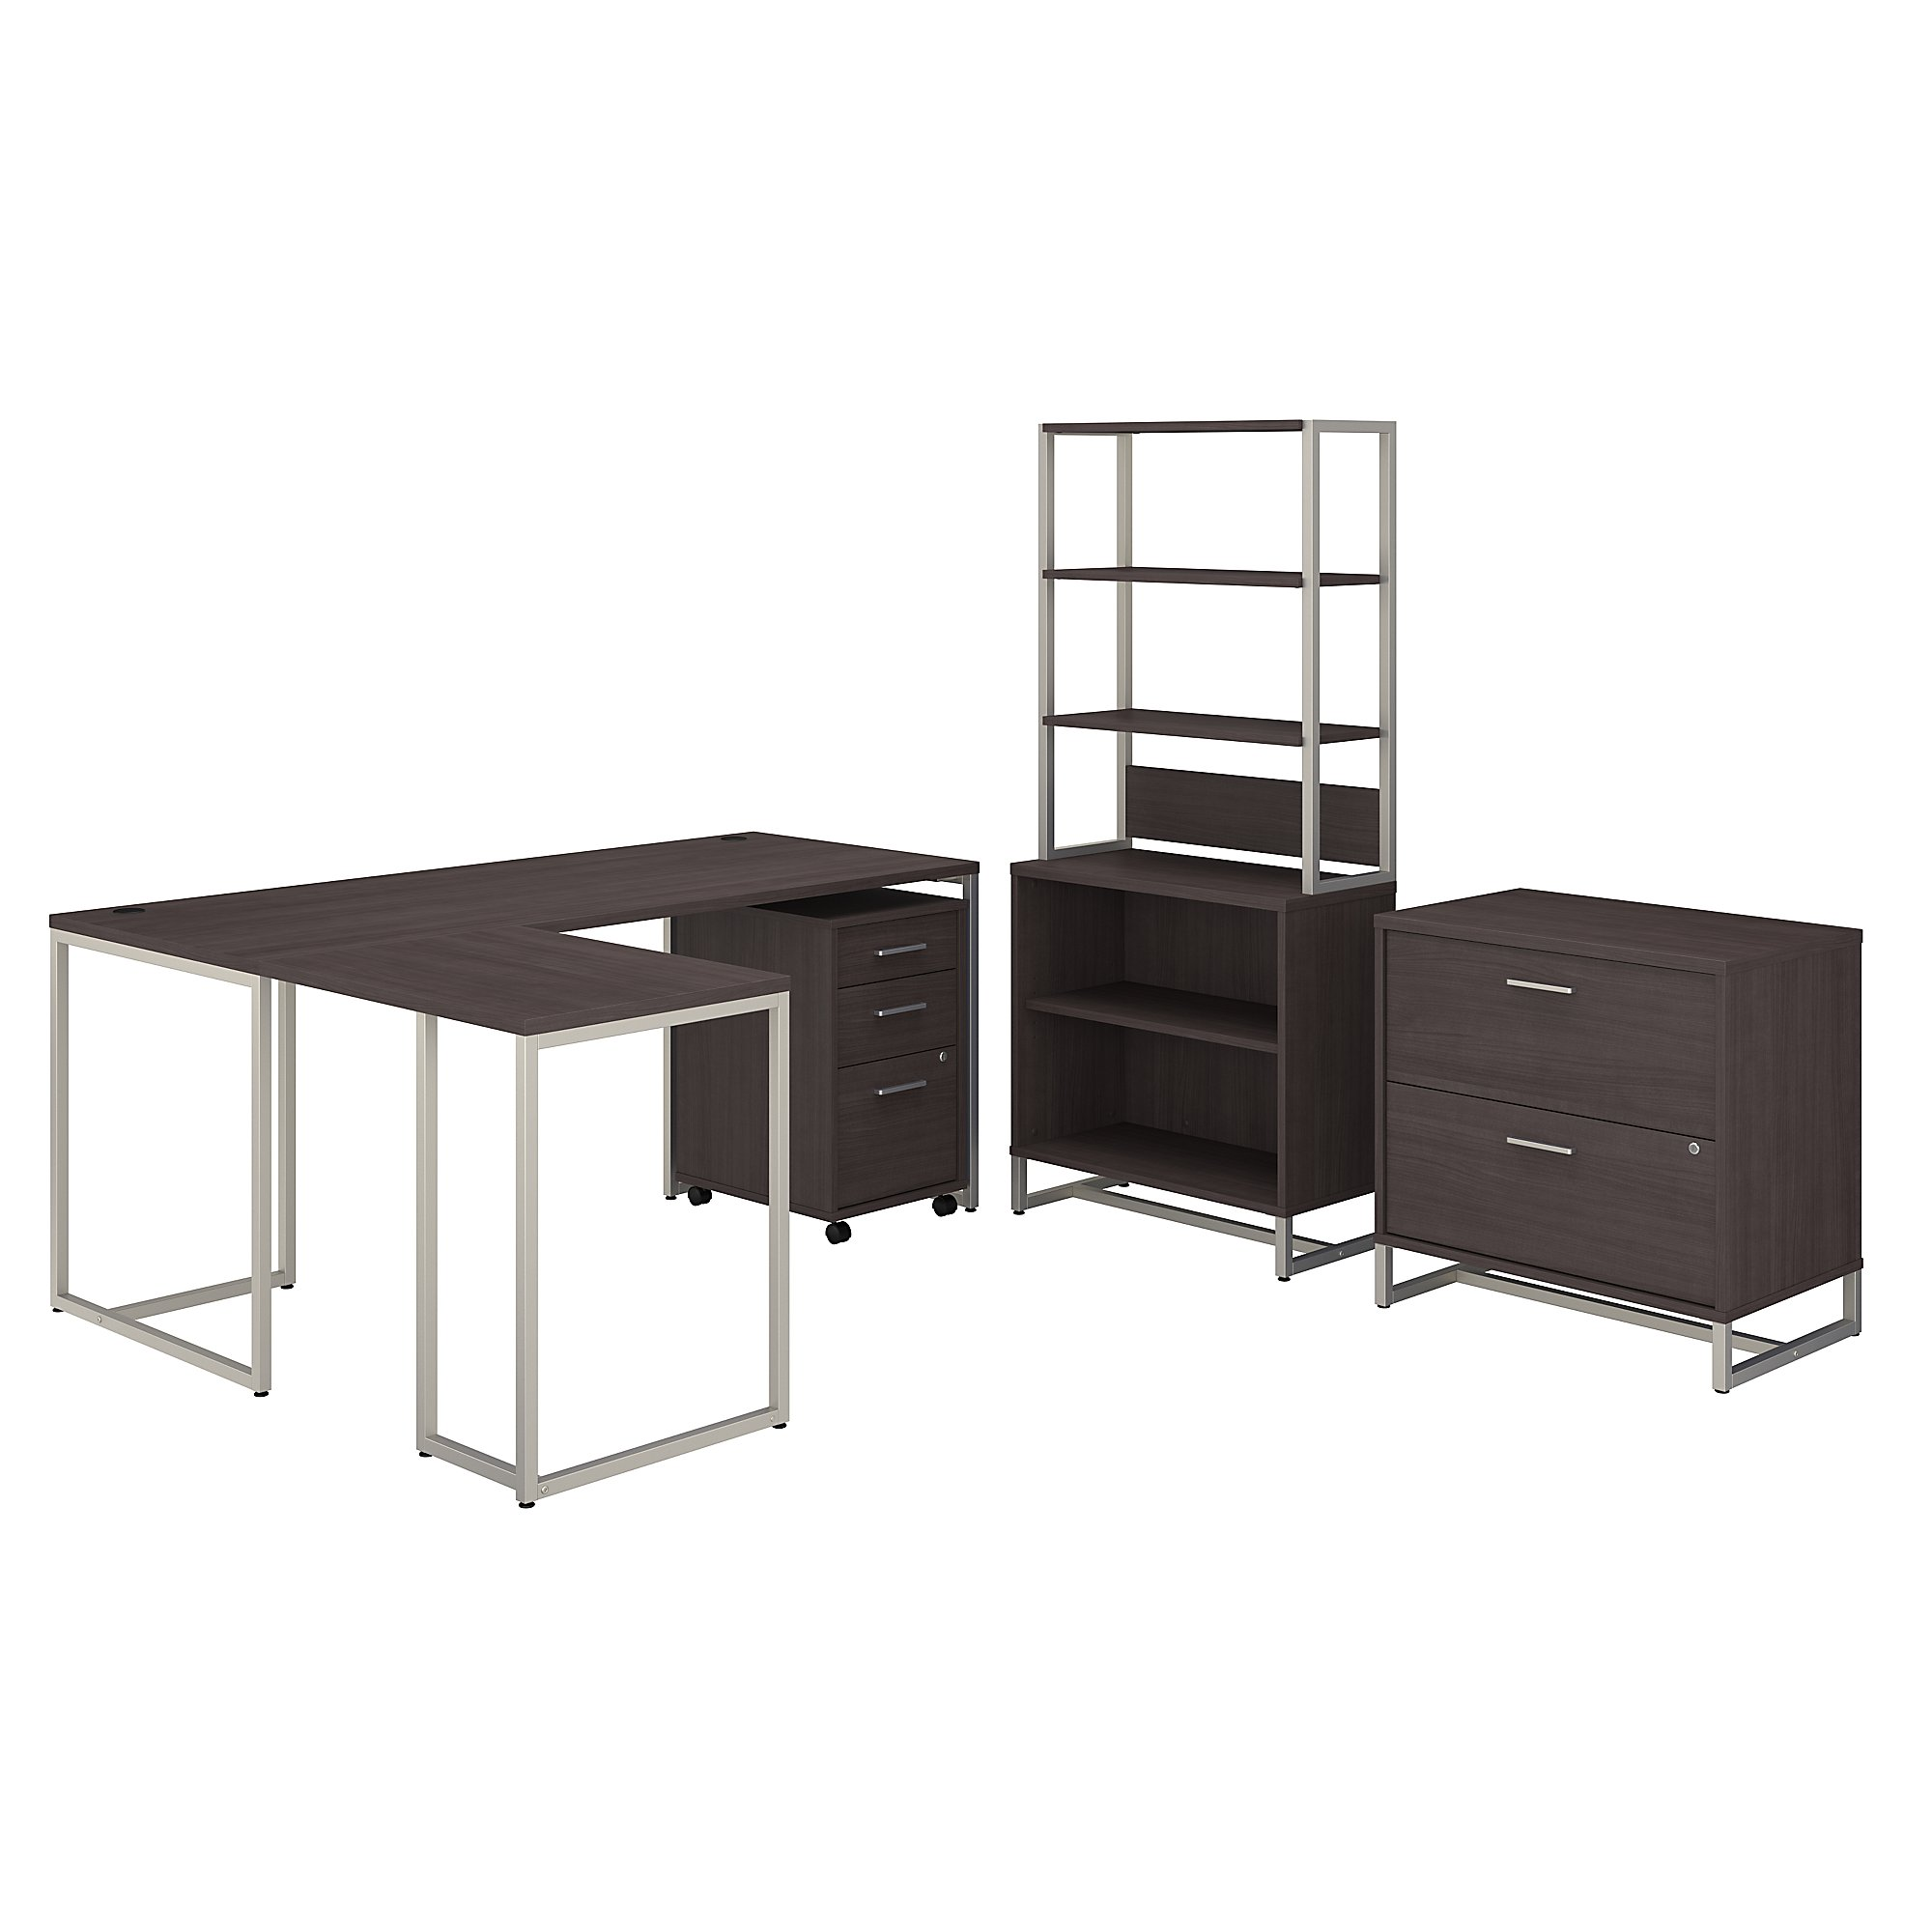 method collection office furniture set in storm gray